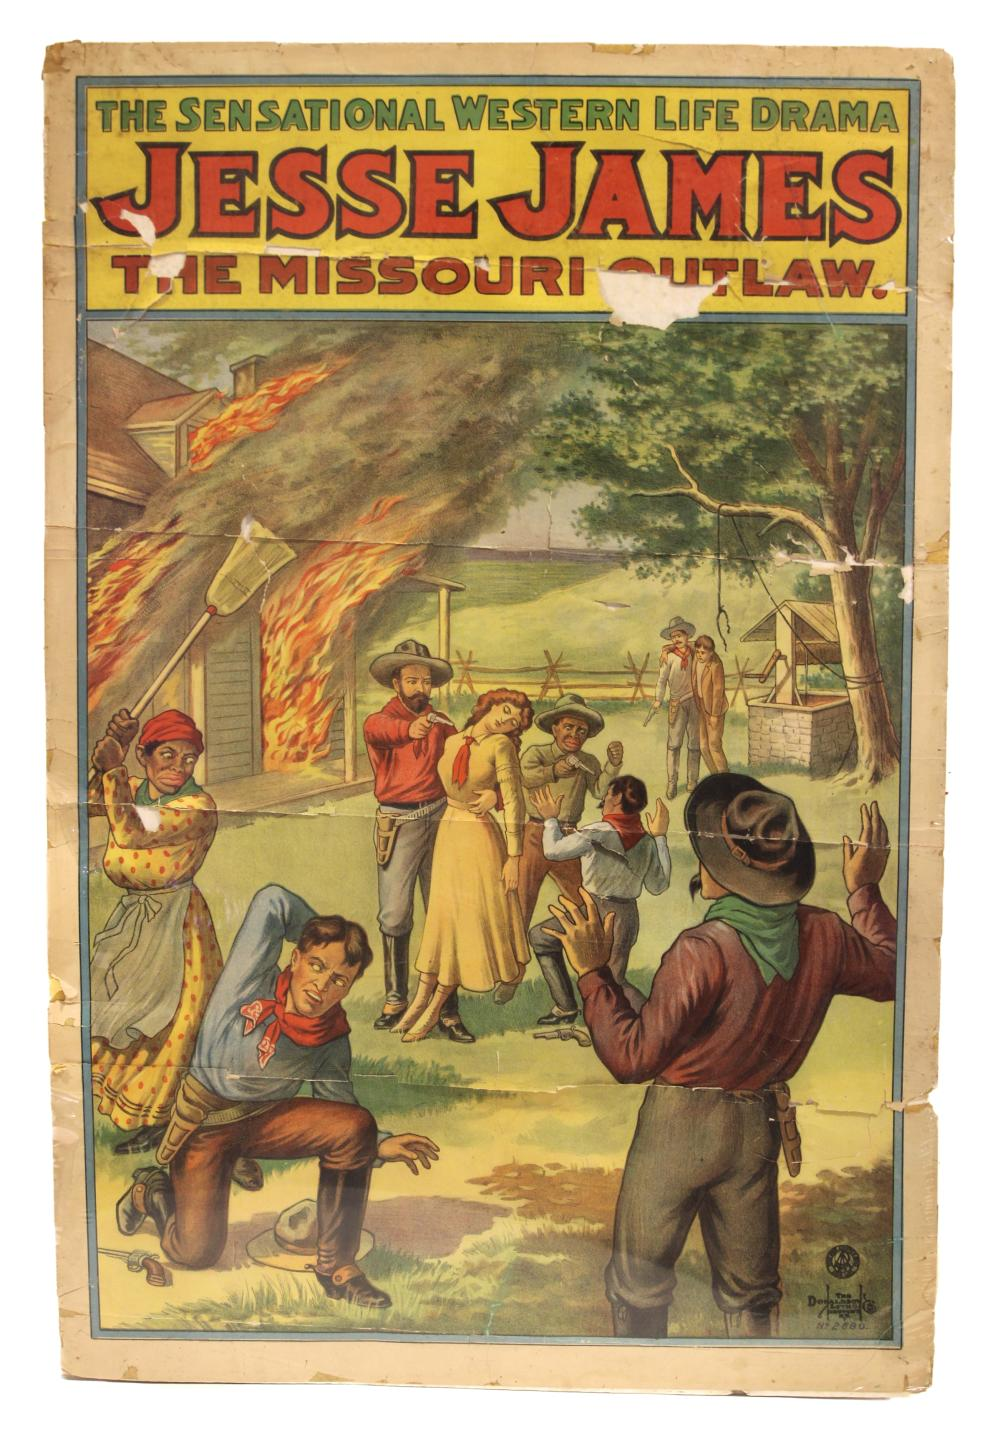 C. 1910 POSTER, OUTLAW JESSE JAMES